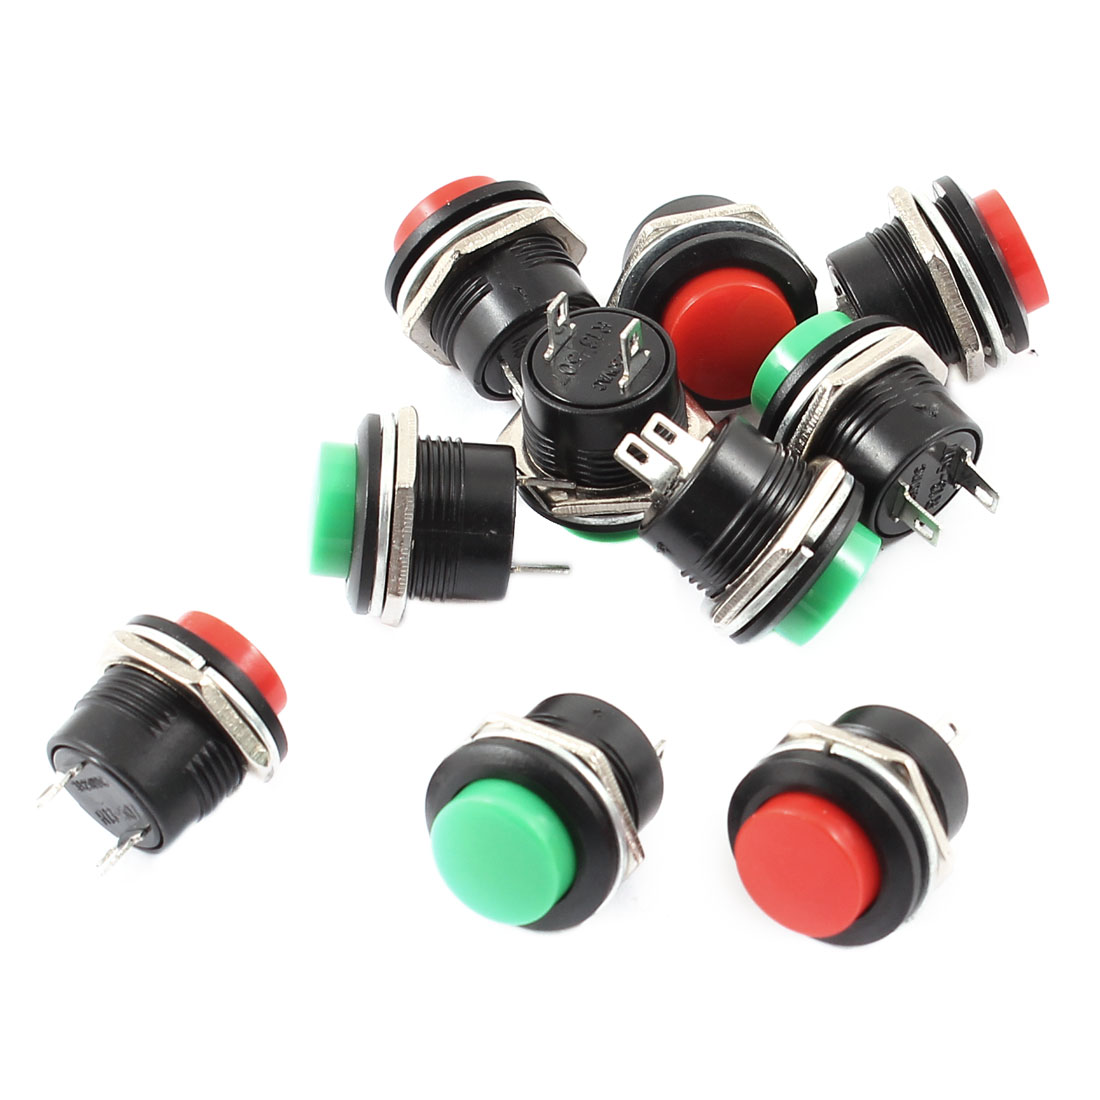 10 Pcs 2 Terminals Green Red Head SPST Momentary Black Pushbutton Switch AC125V 3A AC250V 1.5A